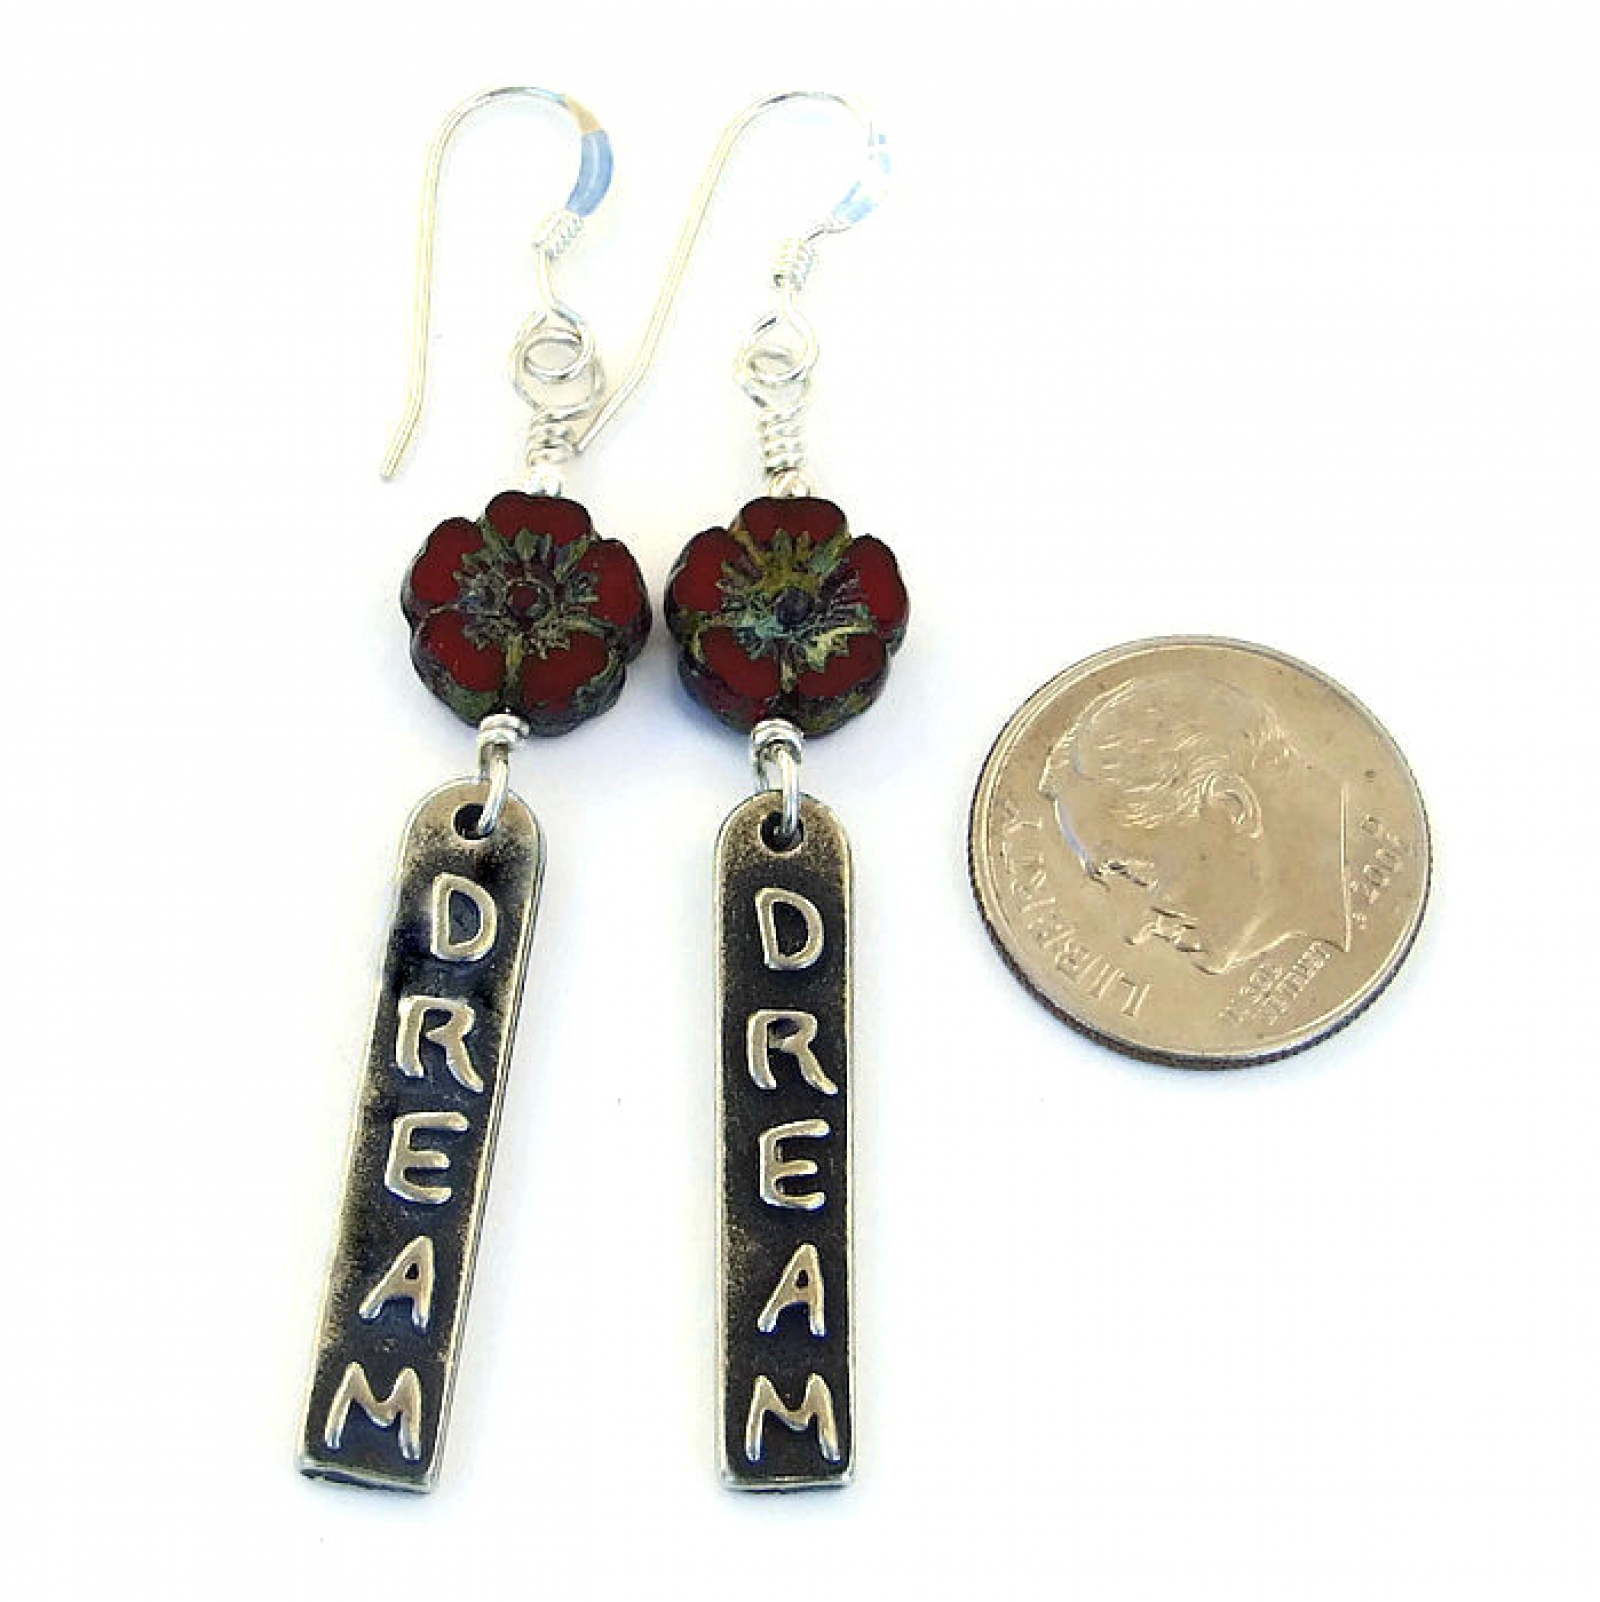 Dream Earrings Gift Idea For Women